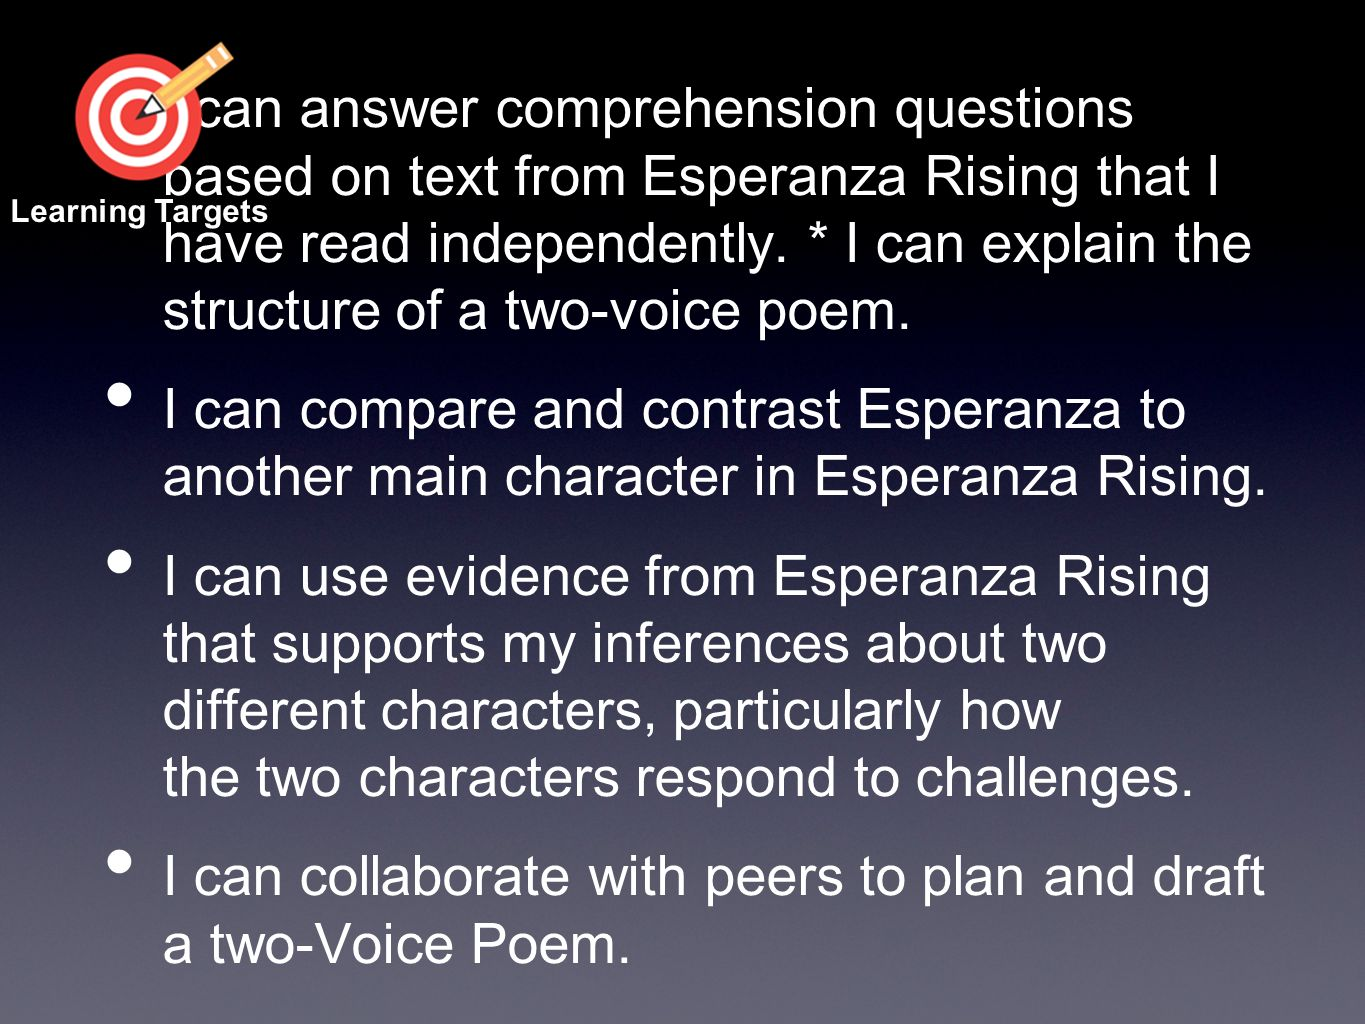 Esperanza Rising 9a Reviewing Character Responses To Challenges